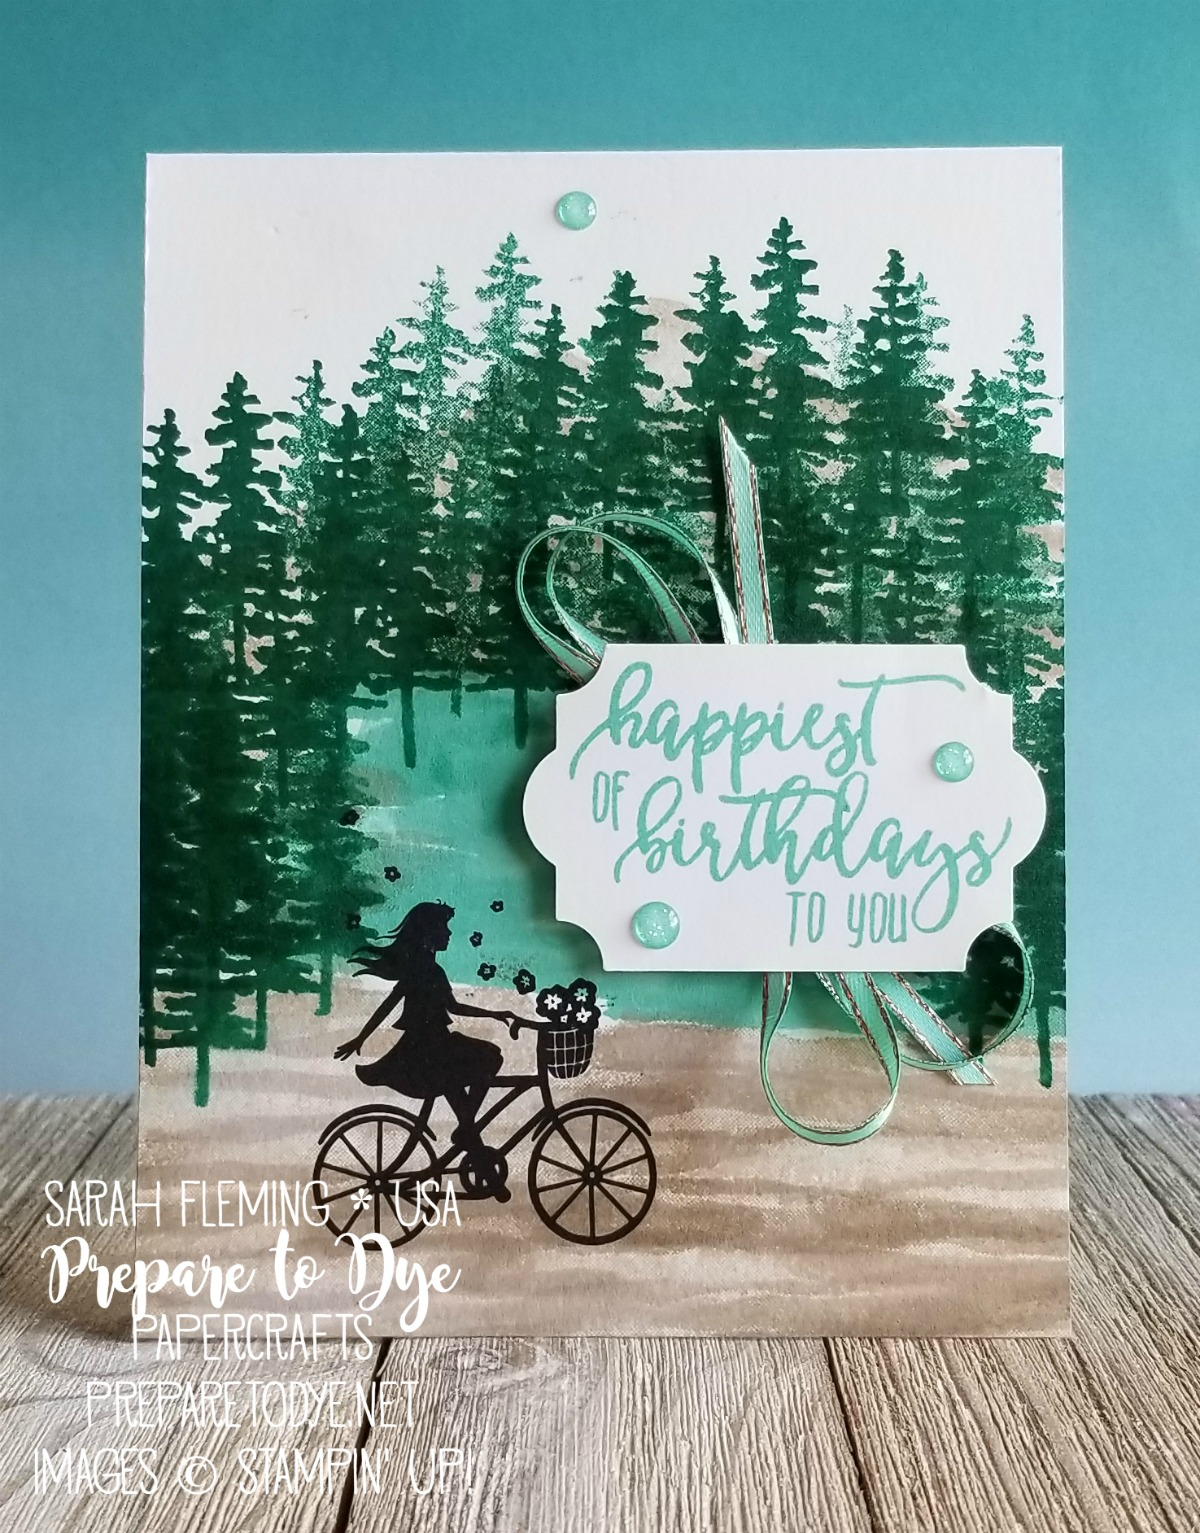 Stampin' Up! One For All, Picture Perfect Birthday, Waterfront stamps with Everyday Label Punch and Glitter Enamel Dots - Stamp, Ink, Paper Challenge - Sarah Fleming - Prepare to Dye Papercrafts